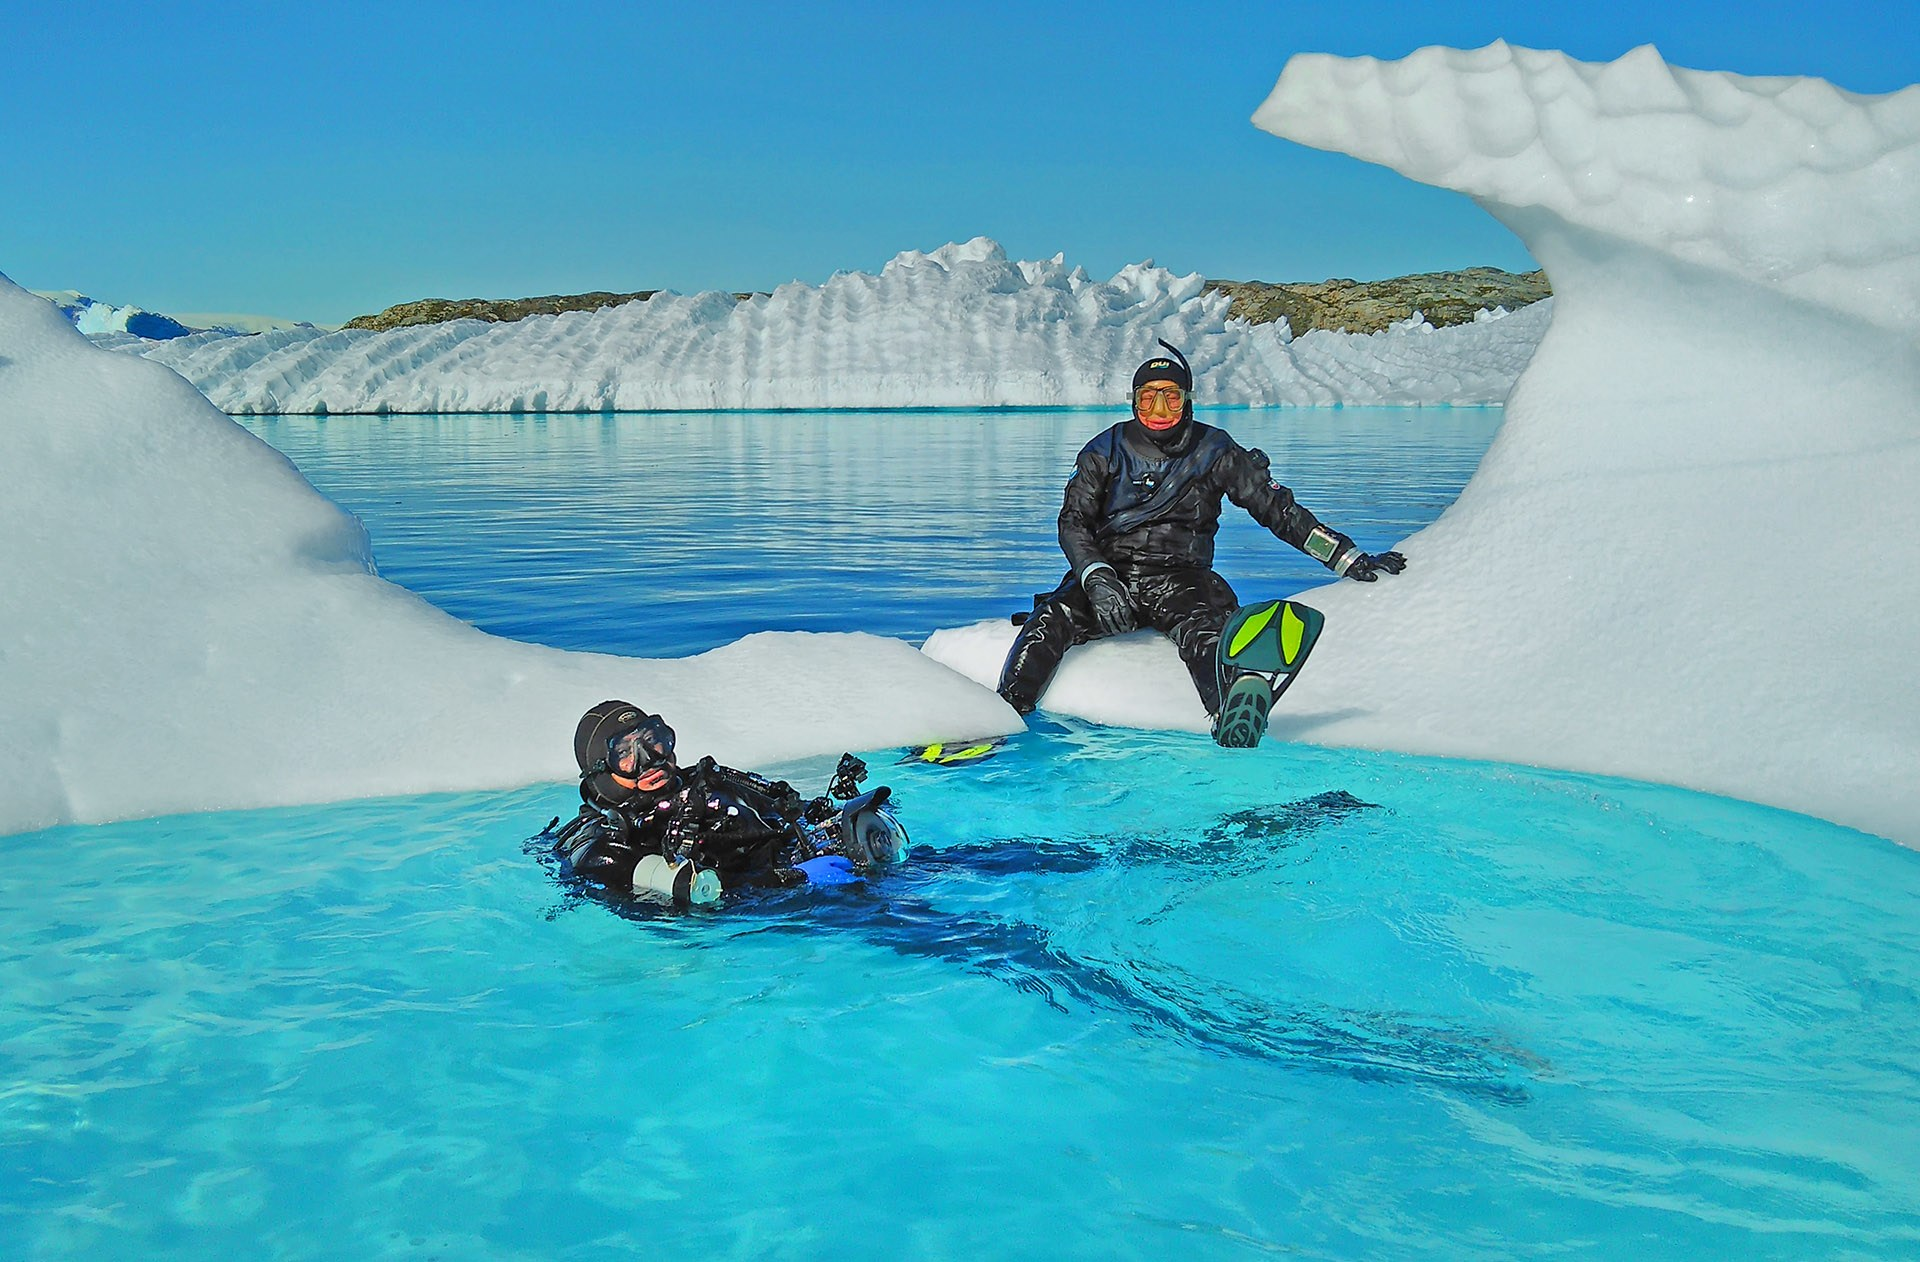 To dive into the frigid waters of the Arctic, divers need to wear heavy thermals, wetsuits, gloves, and headgear. Even with these additions, swimming in these waters is tricky due to the combination of sea ice and freshwater ice, which have different densities, and impact buoyancy in their vicinity. Plus, with the ice almost always moving, navigation is harder.